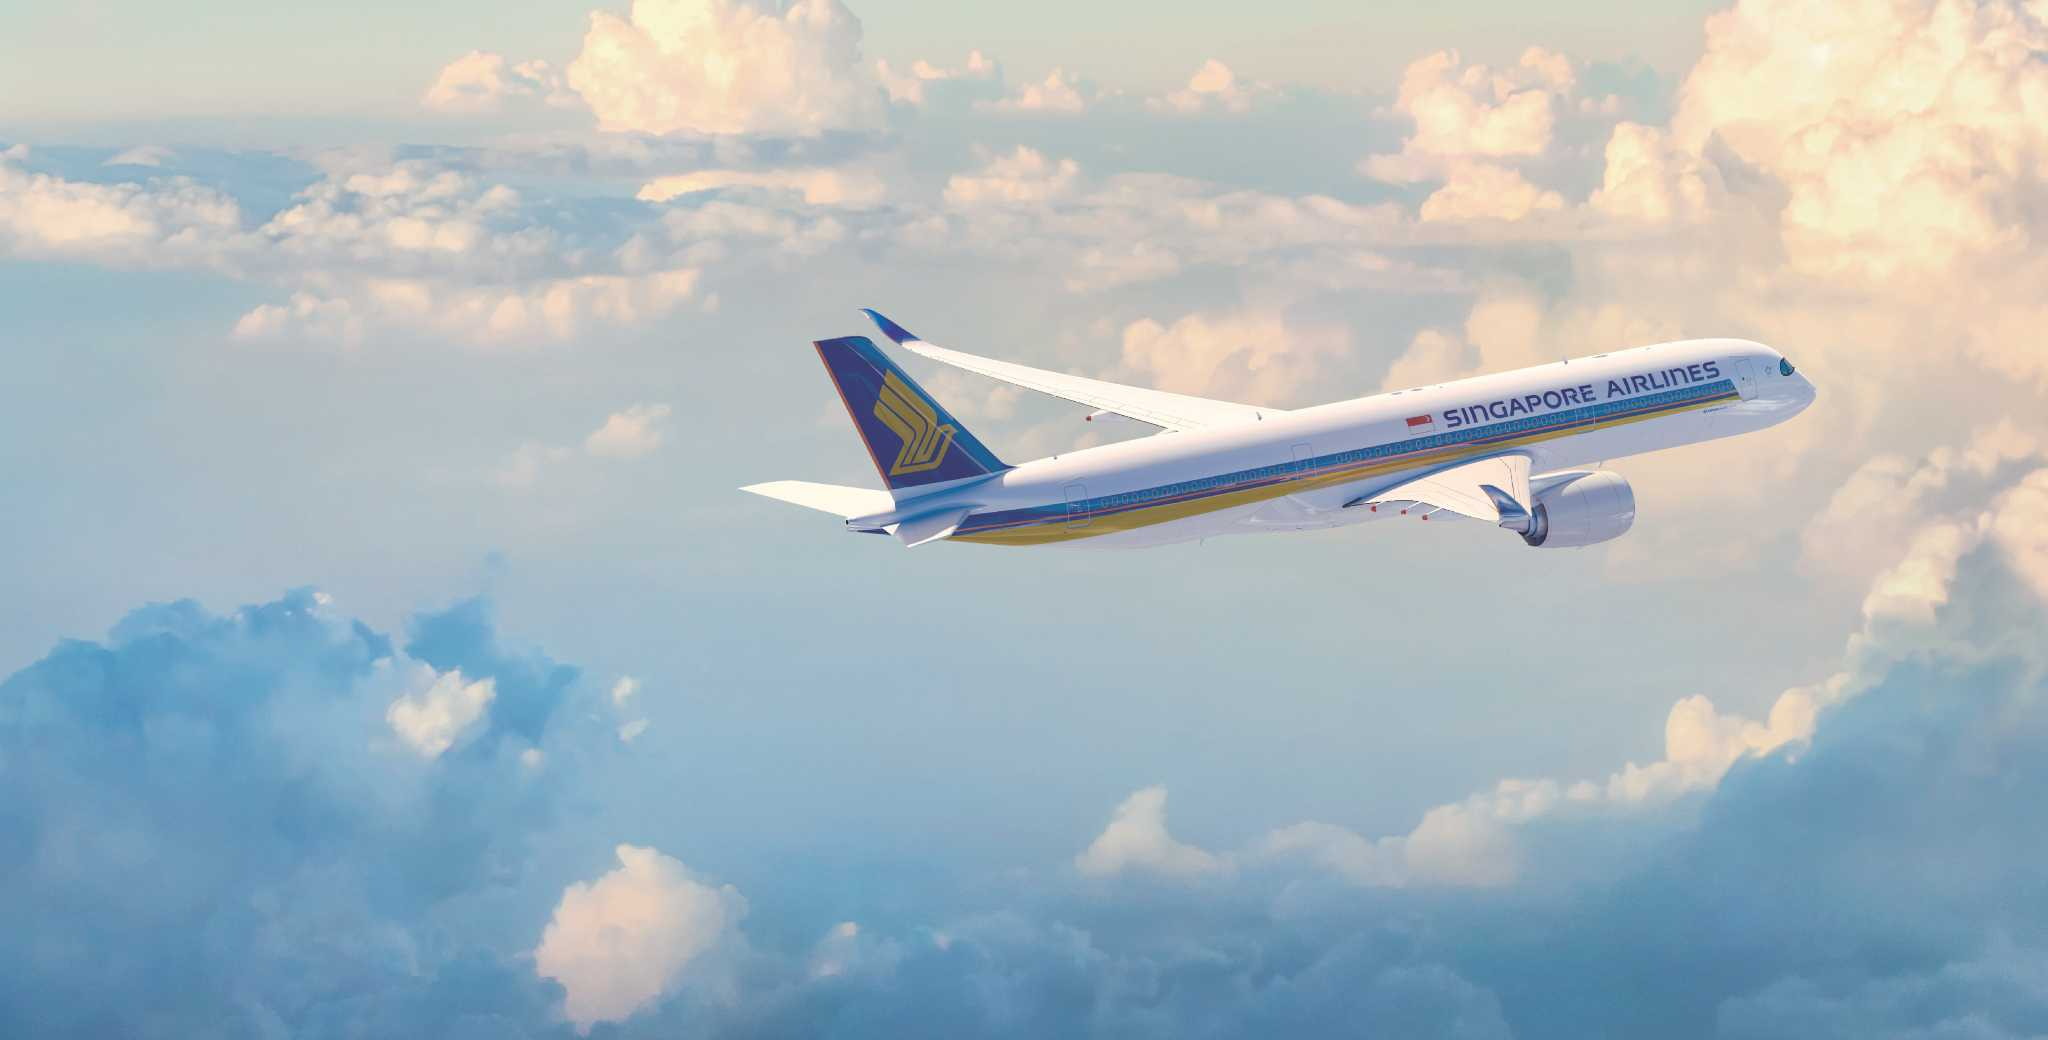 Singapore Airlines launches Houston\'s first A350 aircraft - Houston ...